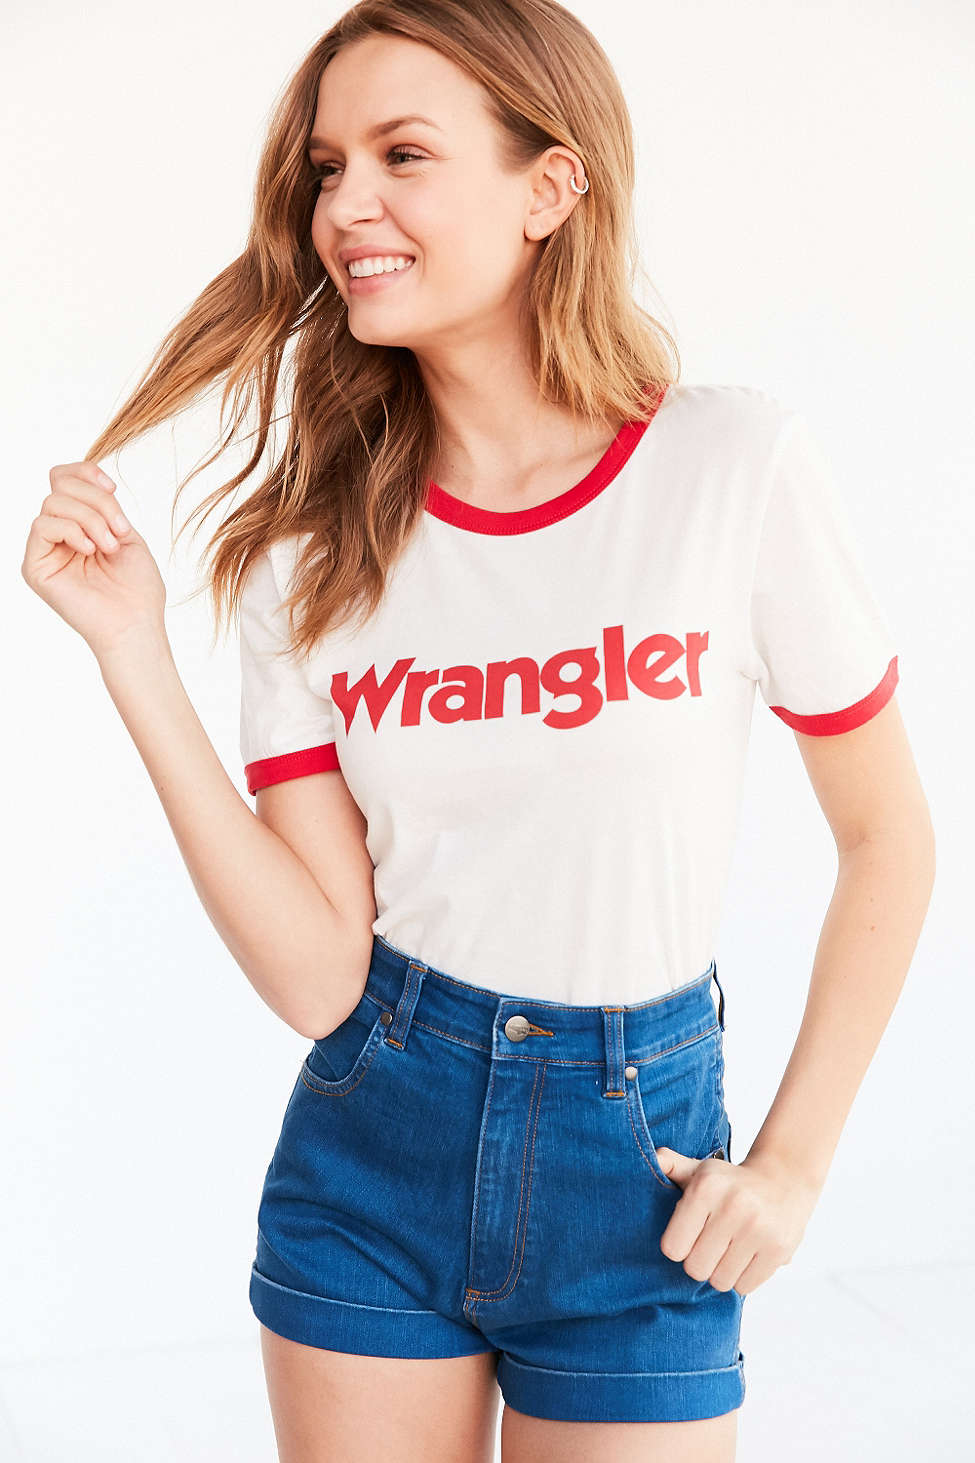 191064de Urban Outfitters Is Bringing Wrangler Back Into the Fashion Spotlight